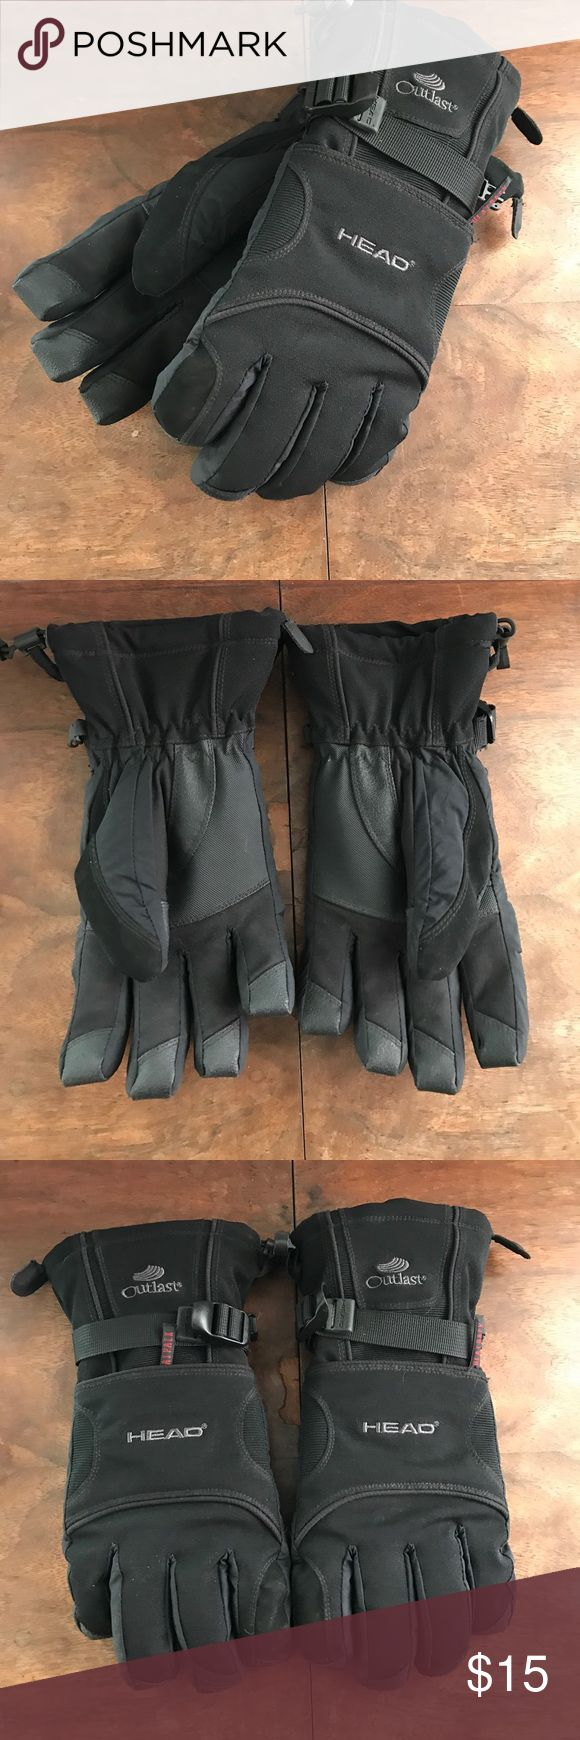 Black Heavy Duty Men's Waterproof Gloves Black Heavy Duty Men's Waterproof Gloves with reinforcement and fleece lining. Perfect condition. Zippered pockets with red mesh lining to insert a heat pack. Size medium. outlast Accessories Gloves